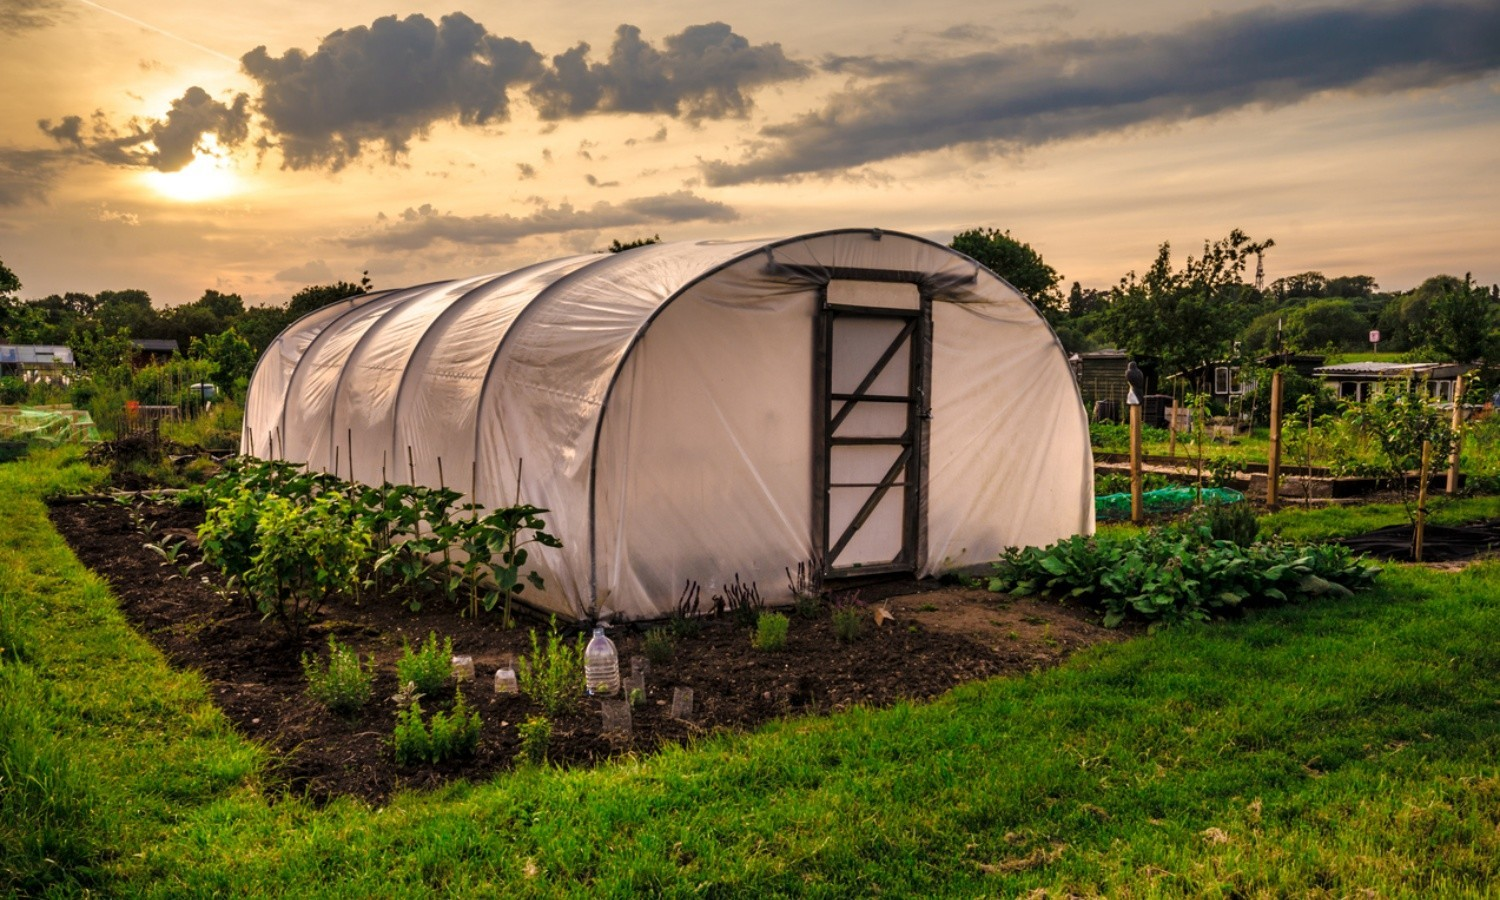 Polythene tunnel as a plastic greenhouse in an allotment with growing vegetables at sunset.